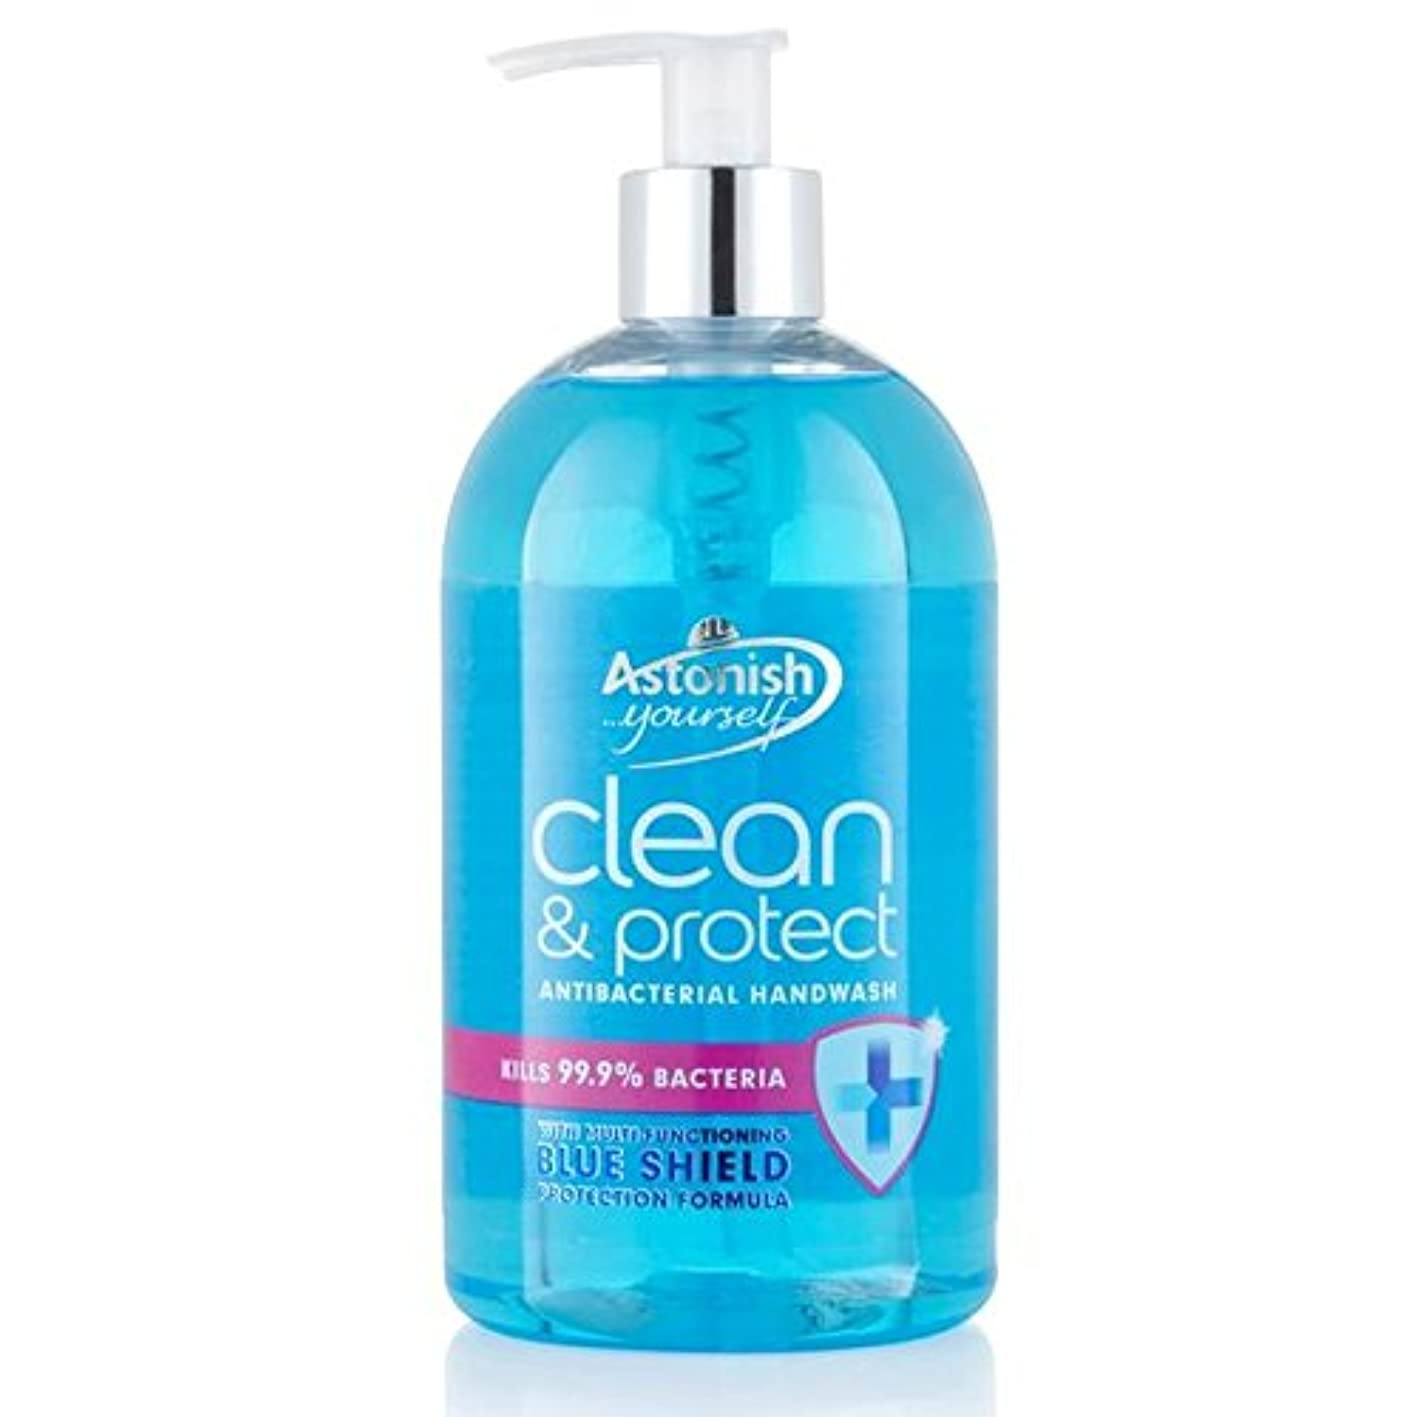 Astonish Clean & Protect Hand Wash 500ml (Pack of 6) - クリーン驚か&ハンドウォッシュ500ミリリットルを保護 x6 [並行輸入品]